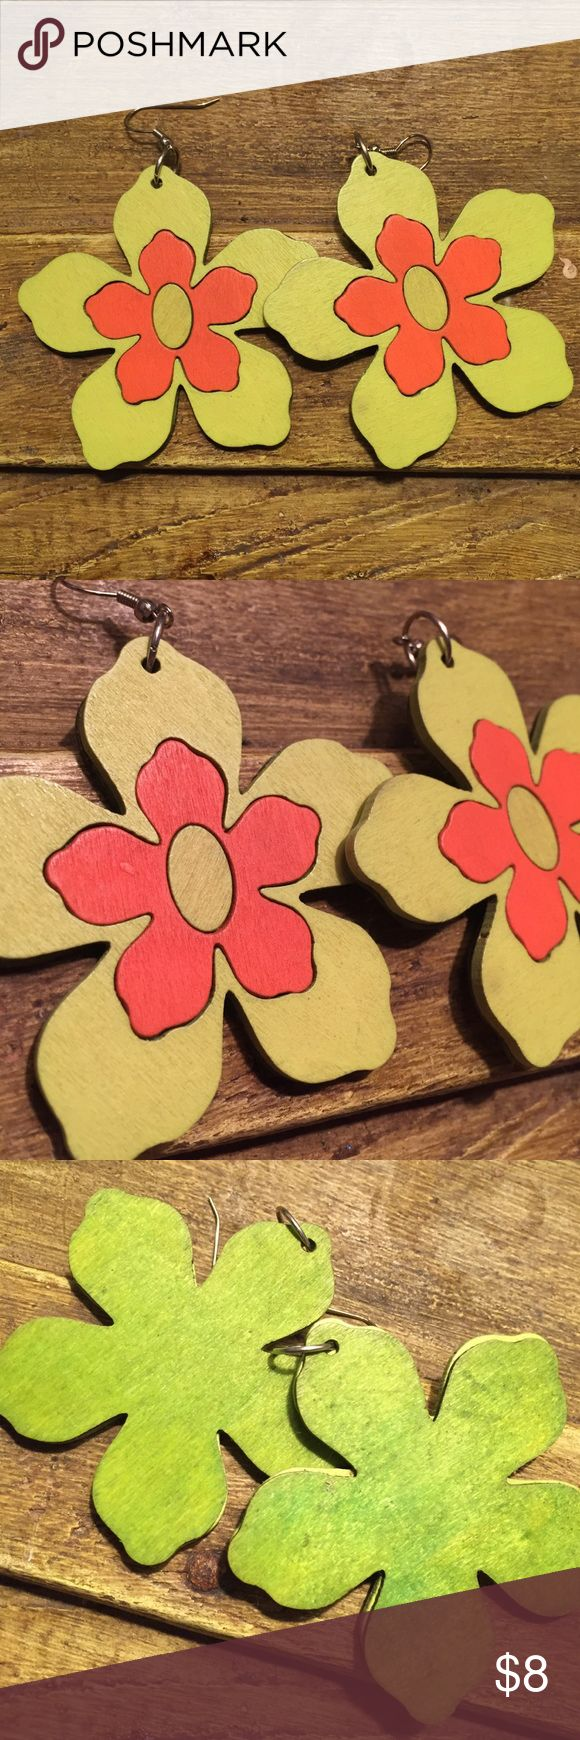 Flower Earrings in Green Handmade wooden flower earrings in green (orange also available). Large, but lightweight- and so cute! Features a green floral with orange center. Handmade Jewelry Earrings